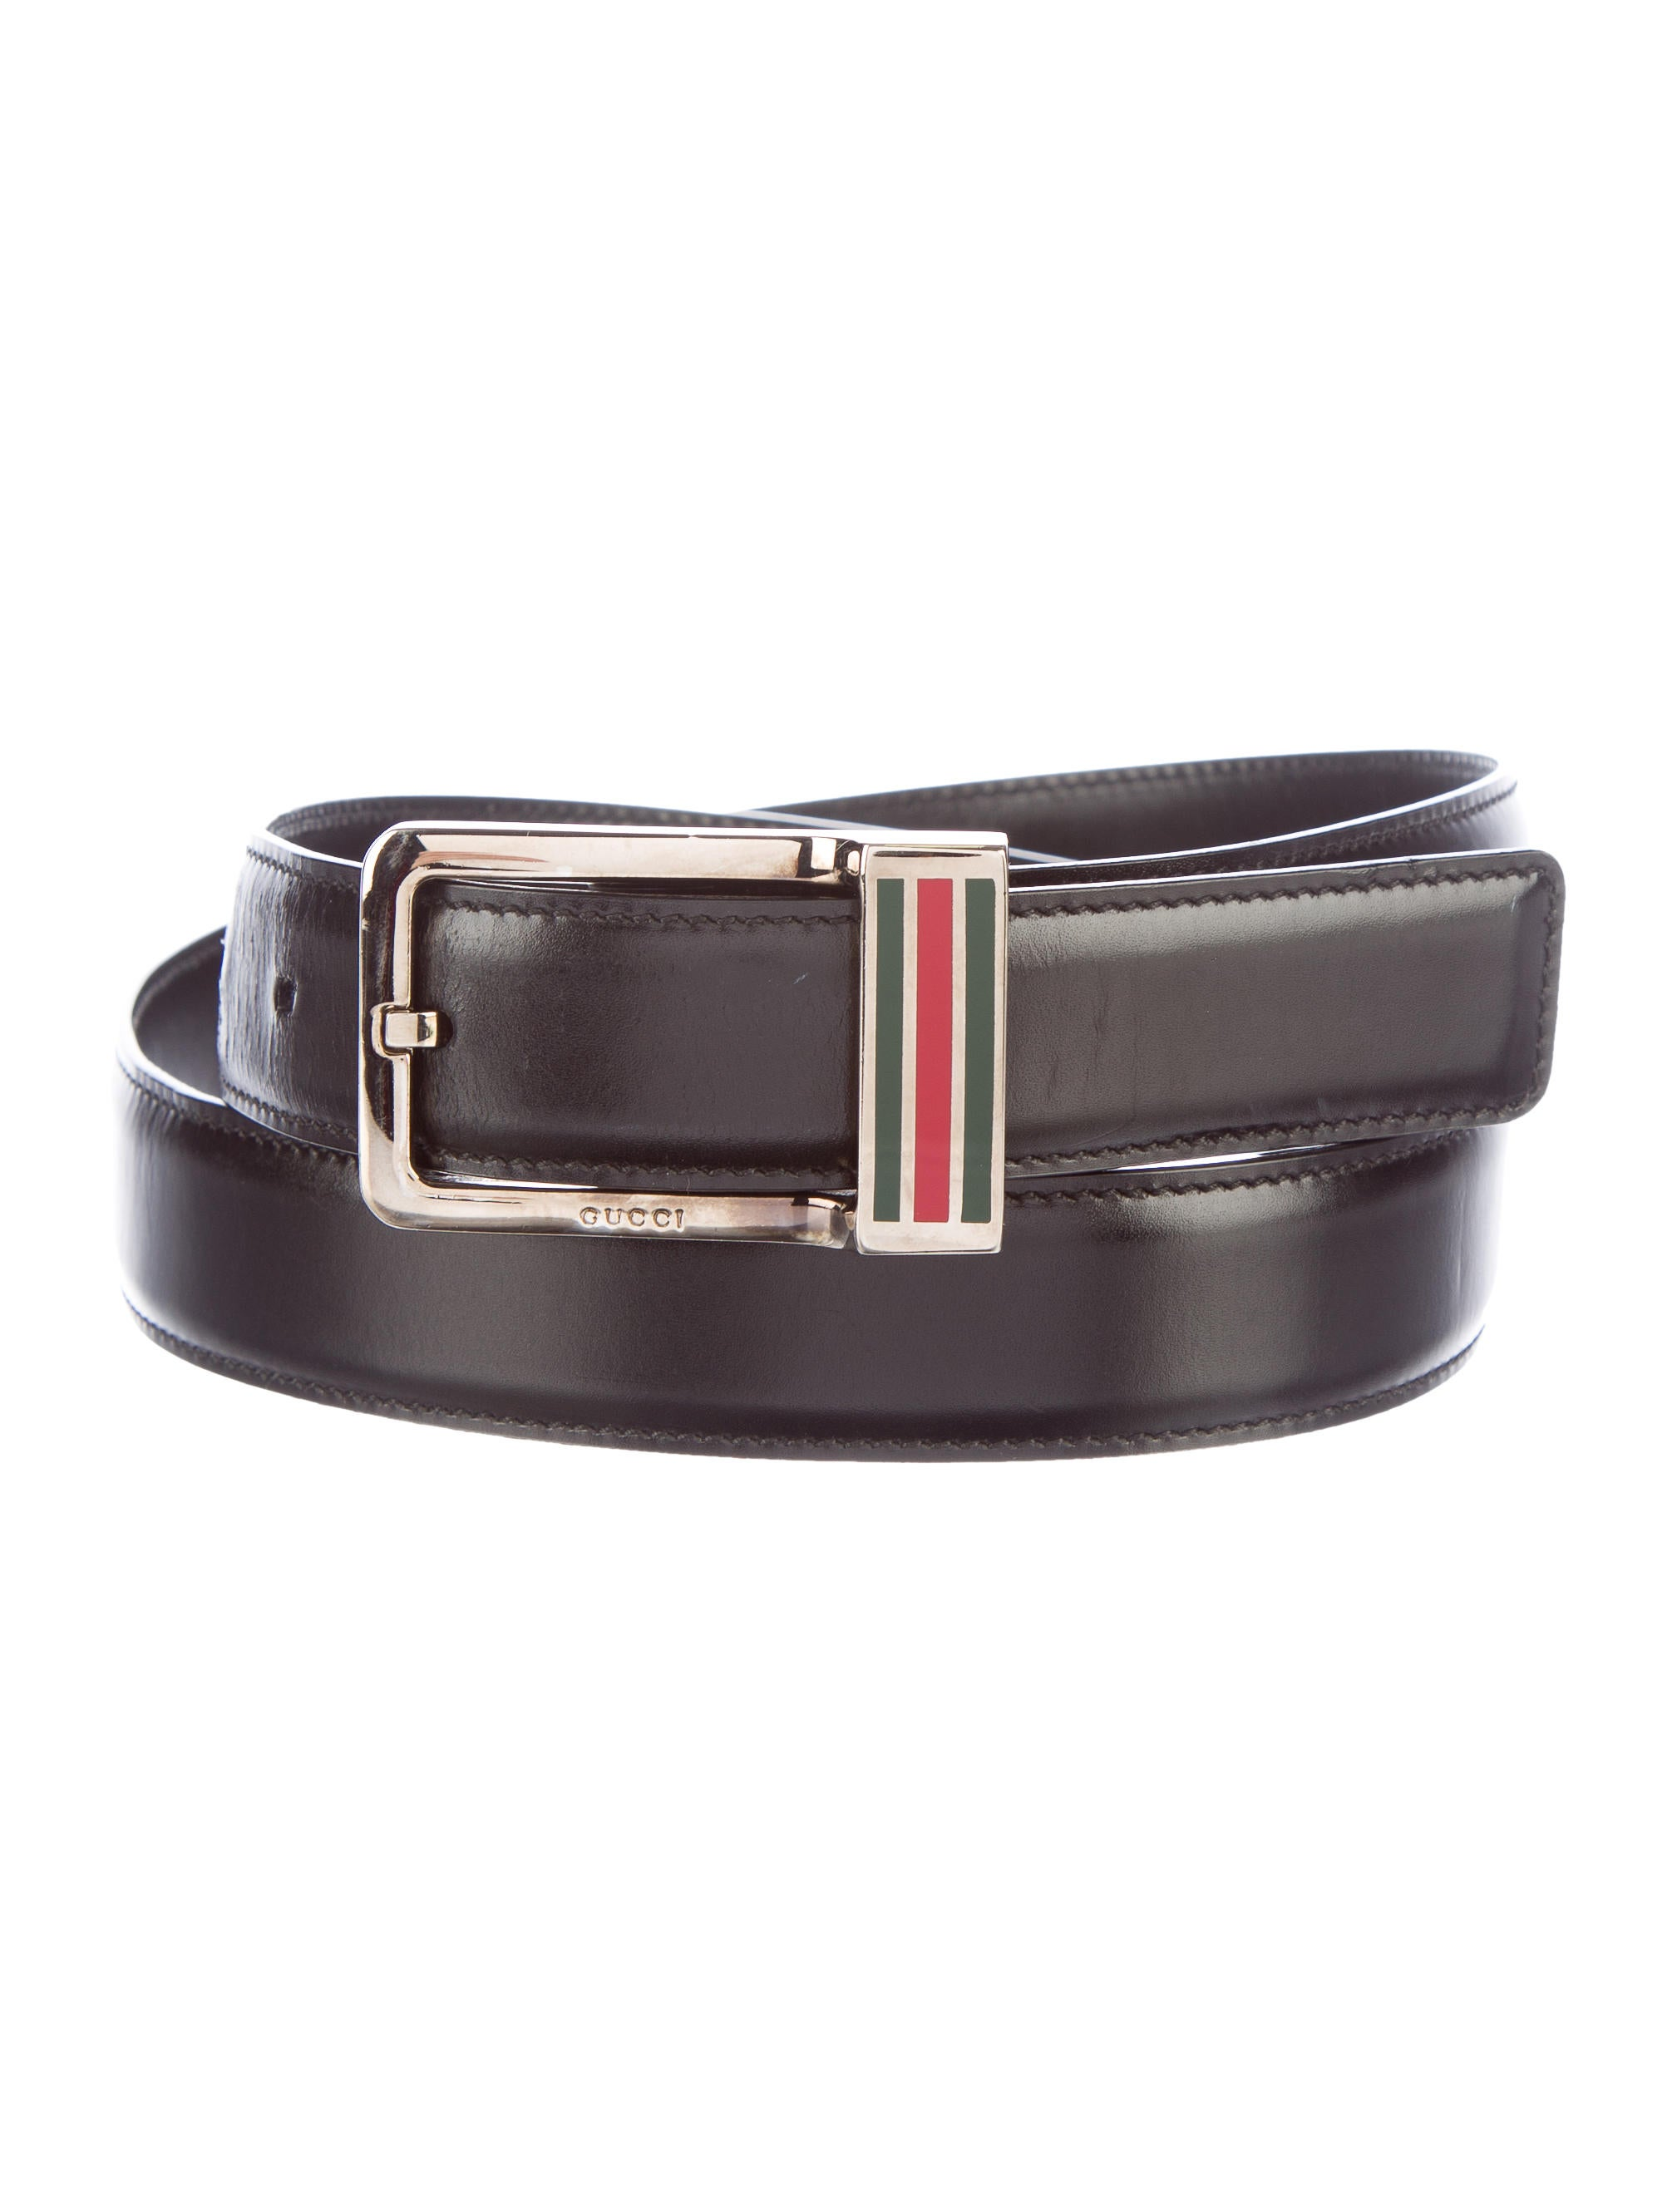 belts. Looking for a Men's Belts? Sportsman's Guide has an assortment of Belts types such as Paracord, Military Surplus or Tactical. Look to Sportsman's Guide to find the perfect Belt.